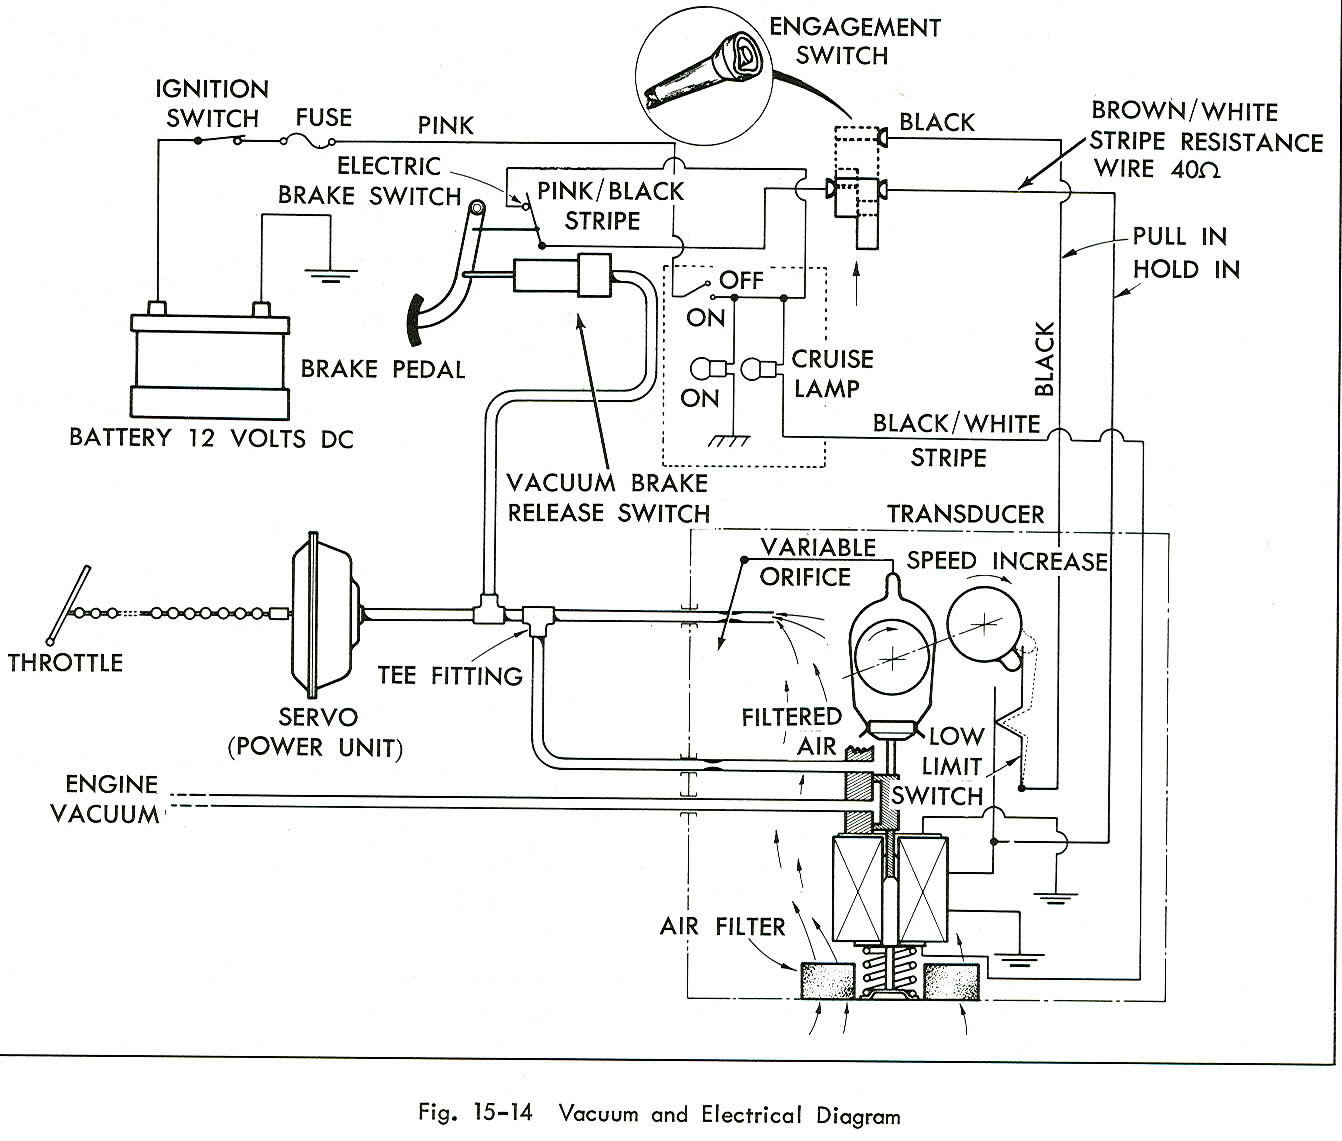 Cadillac Cruise Control Diagram Wiring Library Chevrolet Illustration Of Vacuum Electric